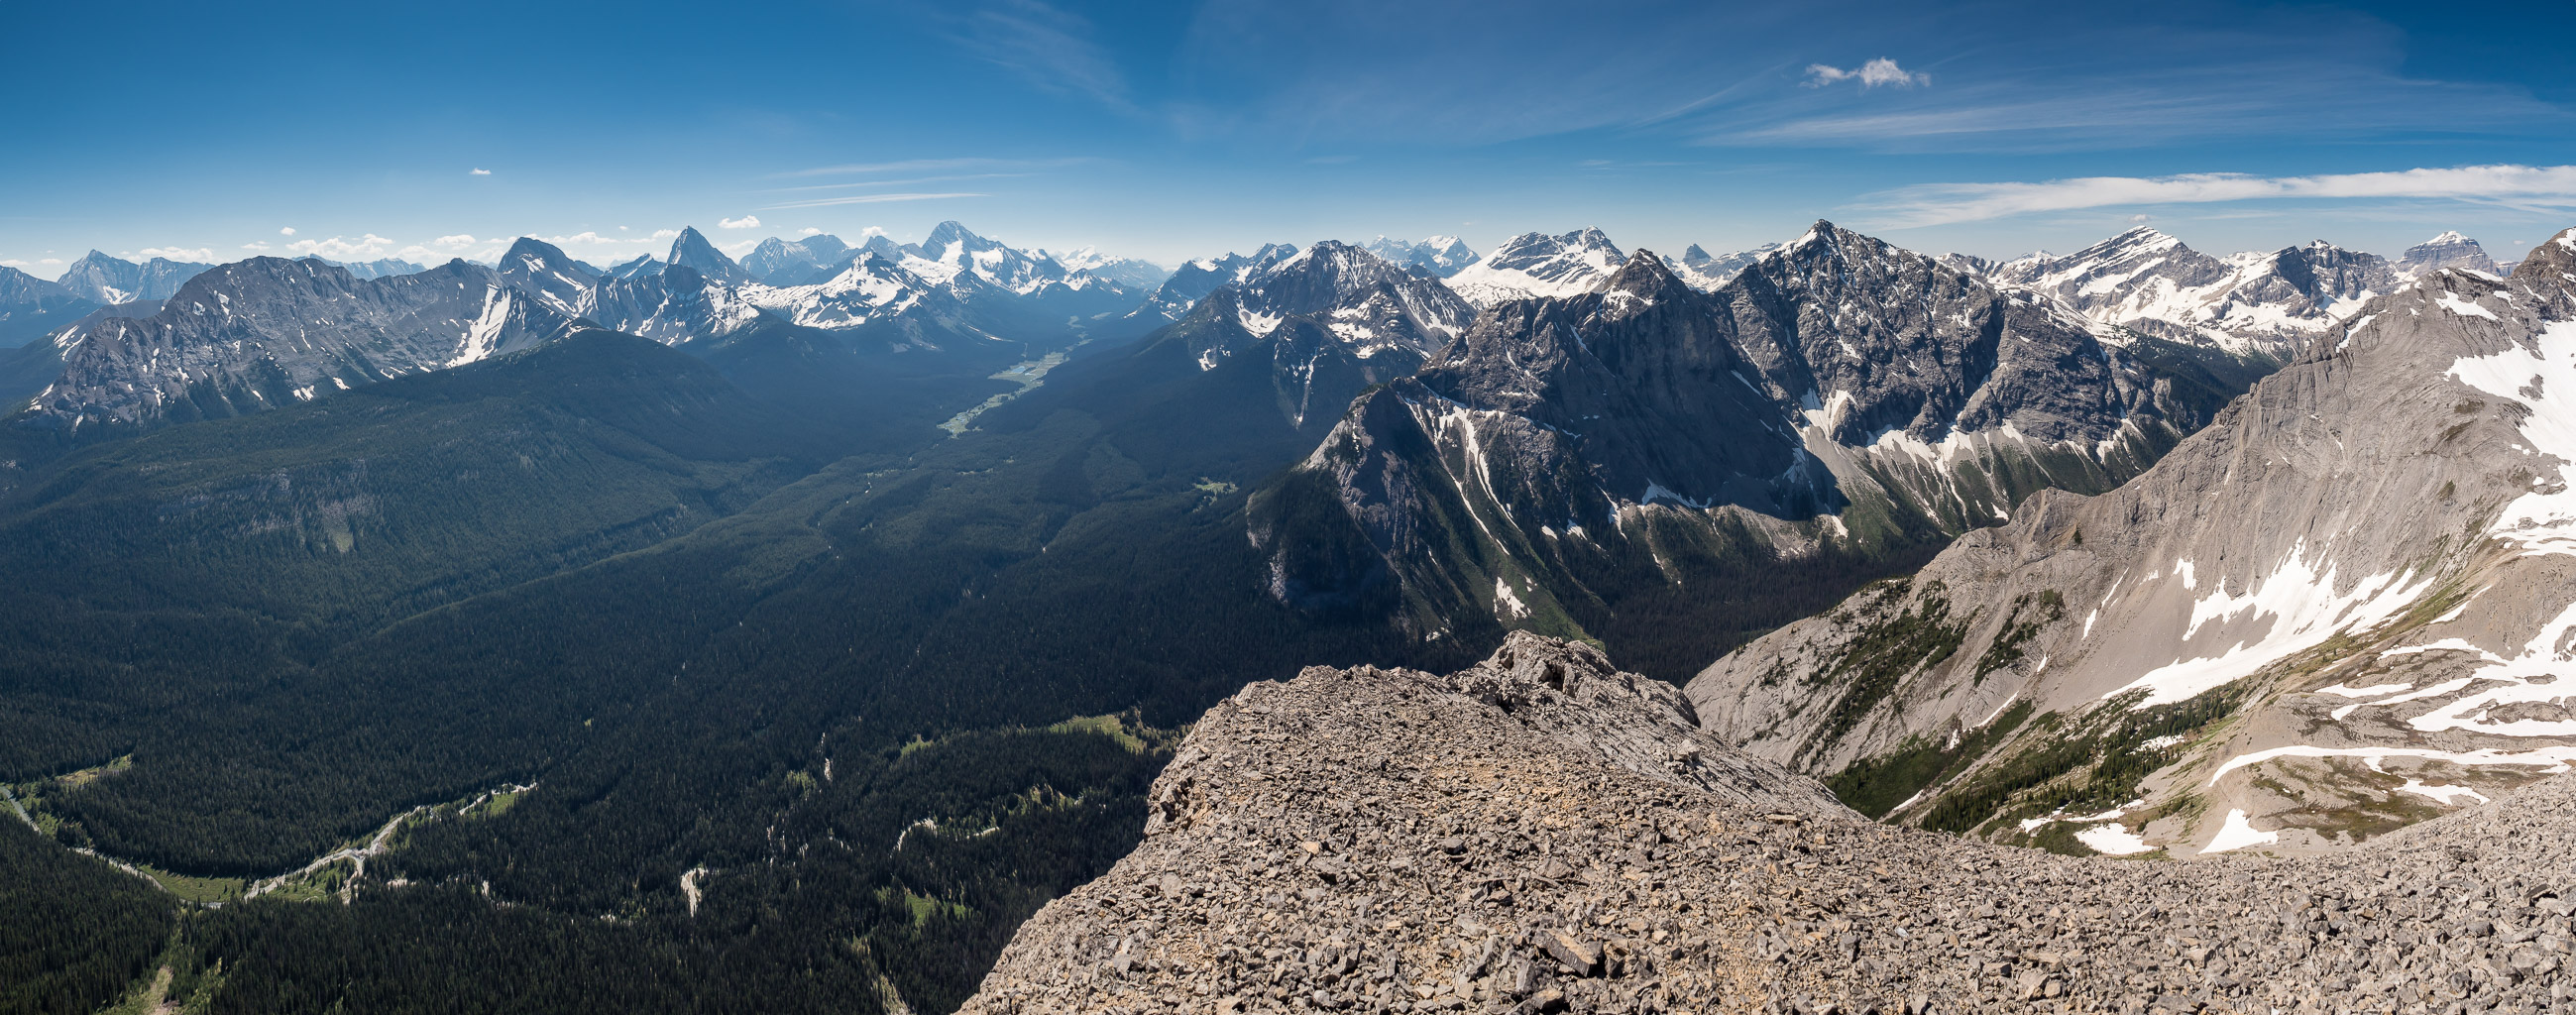 Views south off the south ridge with our approach visible at bottom left. Prominent peaks include (L to R), Shark, Smuts, Birdwood, Smutwood, Sir Douglas, Warre, White Man, Currie and Red Man Mountain.